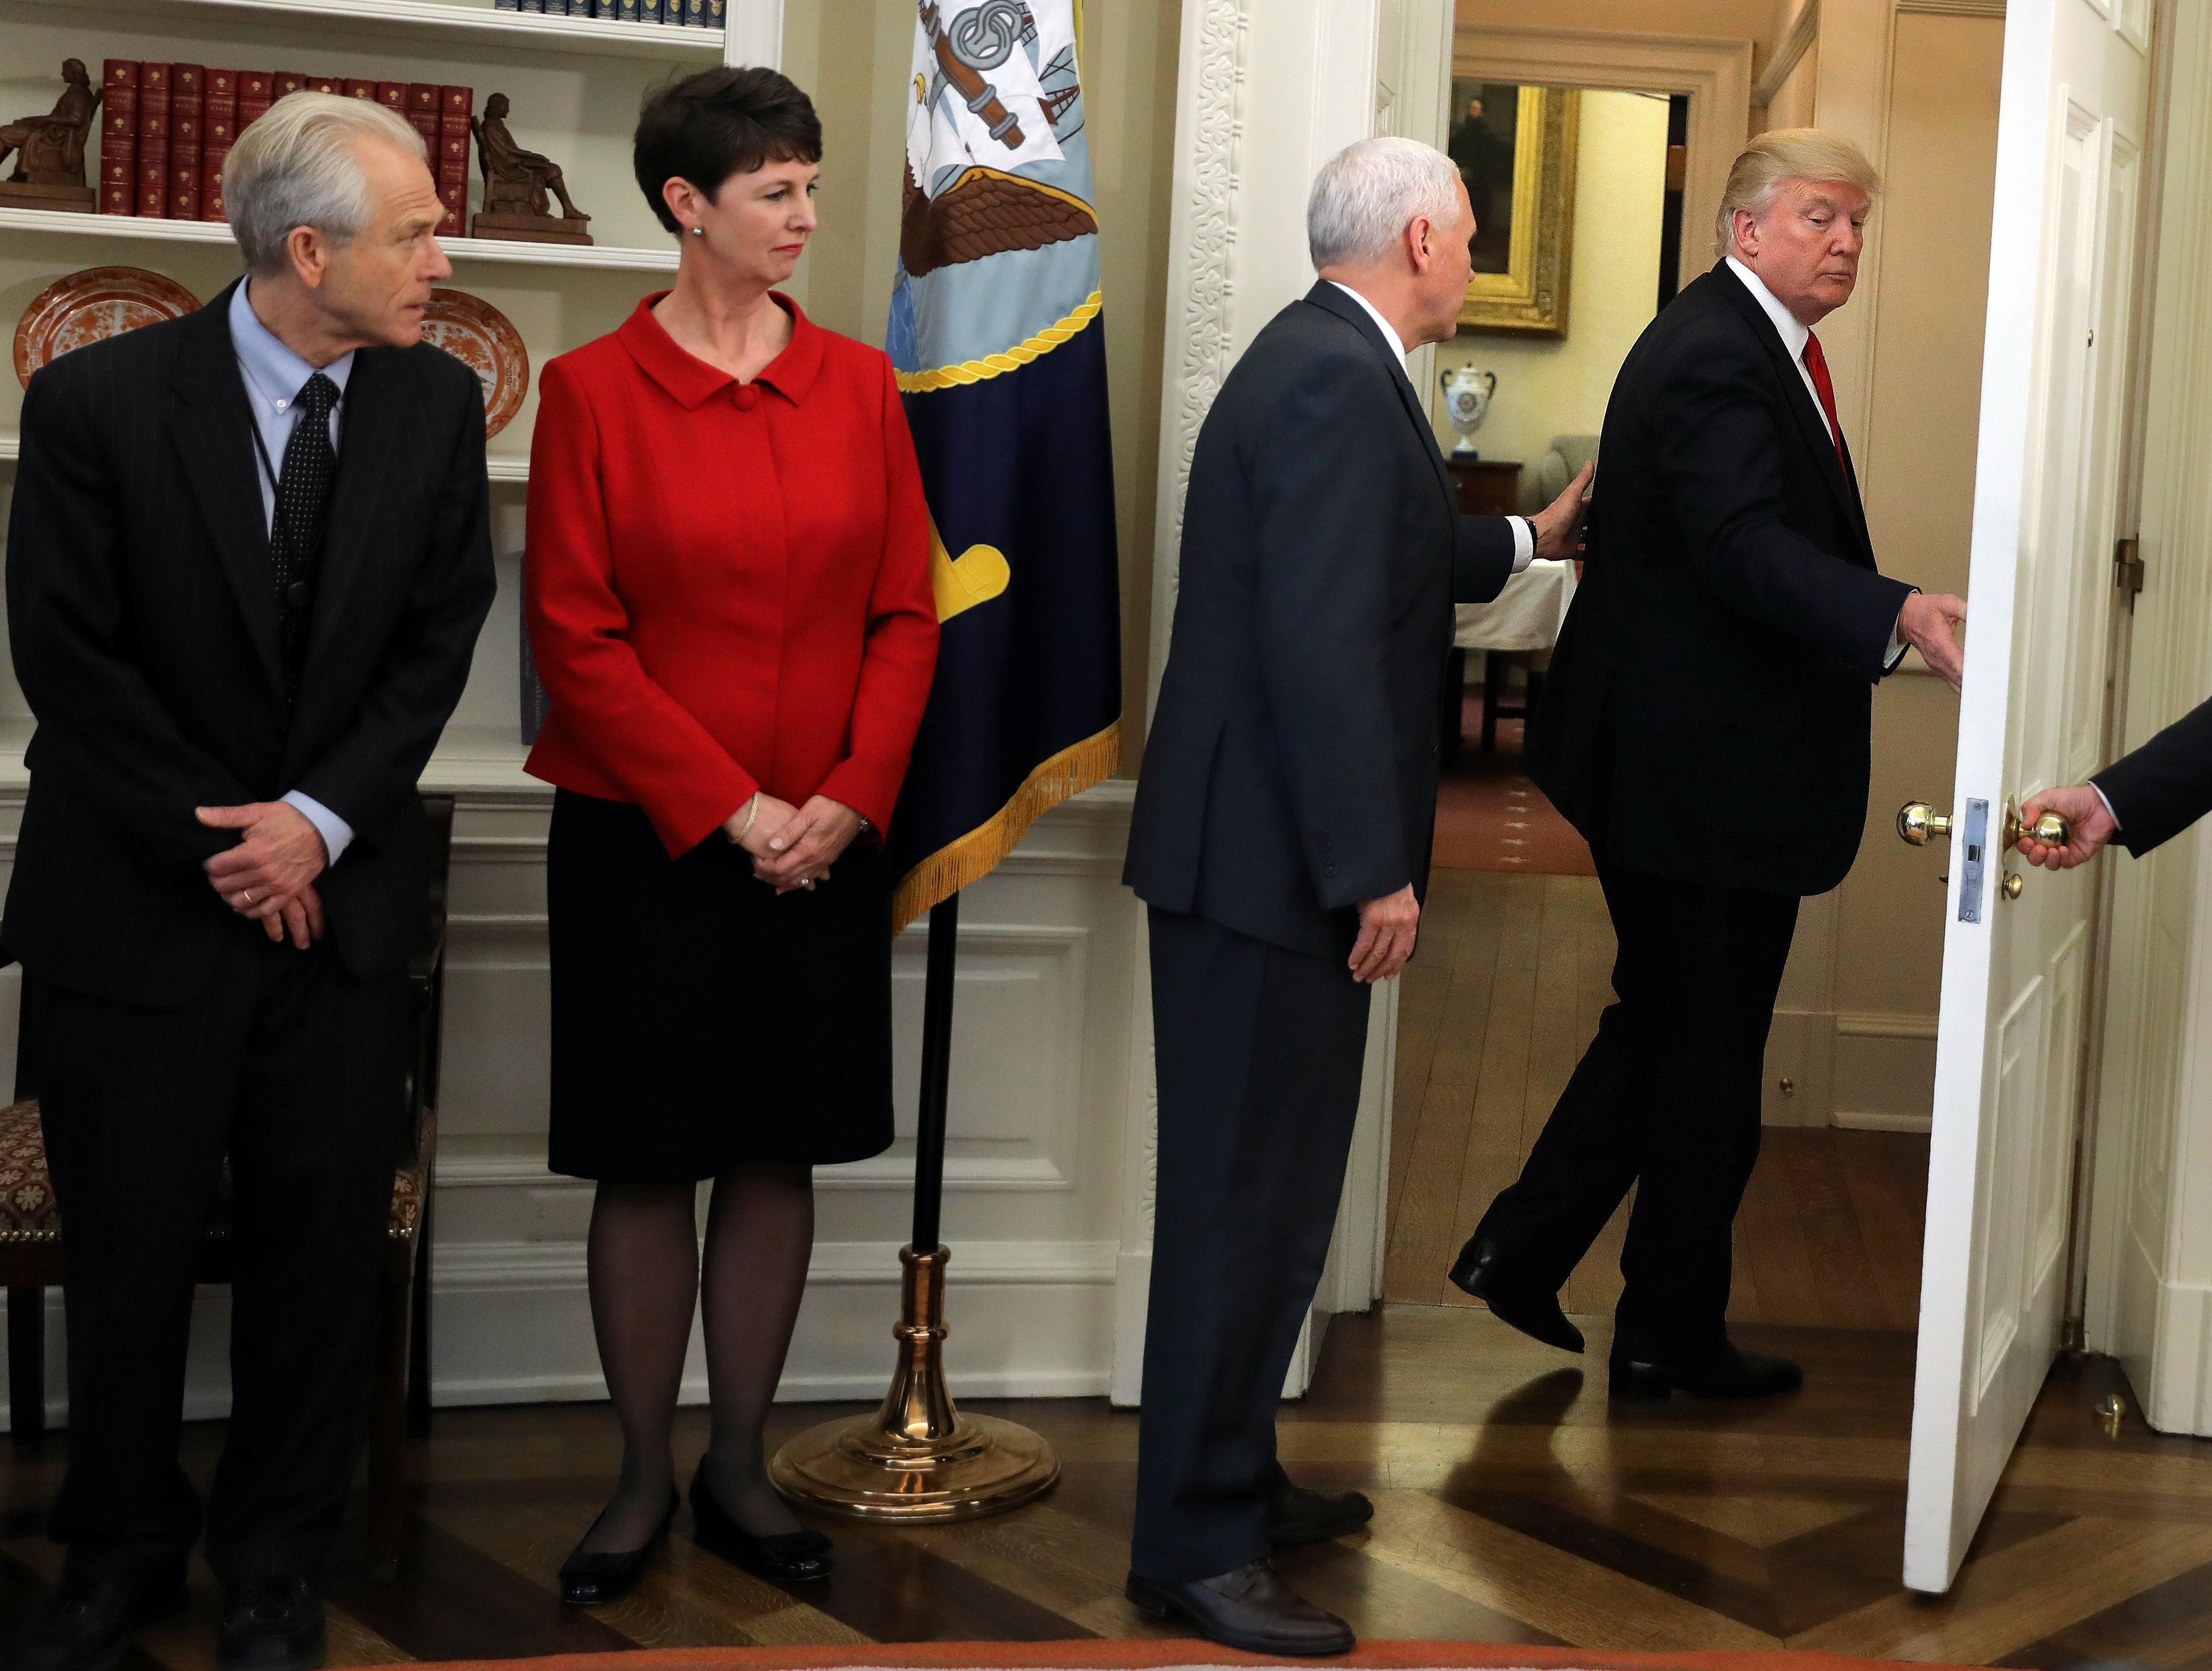 U.S. President Donald Trump leaves without signing executive orders on trade as Vice President Mike Pence (C) reacts during a signing ceremony at the Oval Office of the White House in Washington, U.S., March 31, 2017. REUTERS/Carlos Barria     TPX IMAGES OF THE DAY